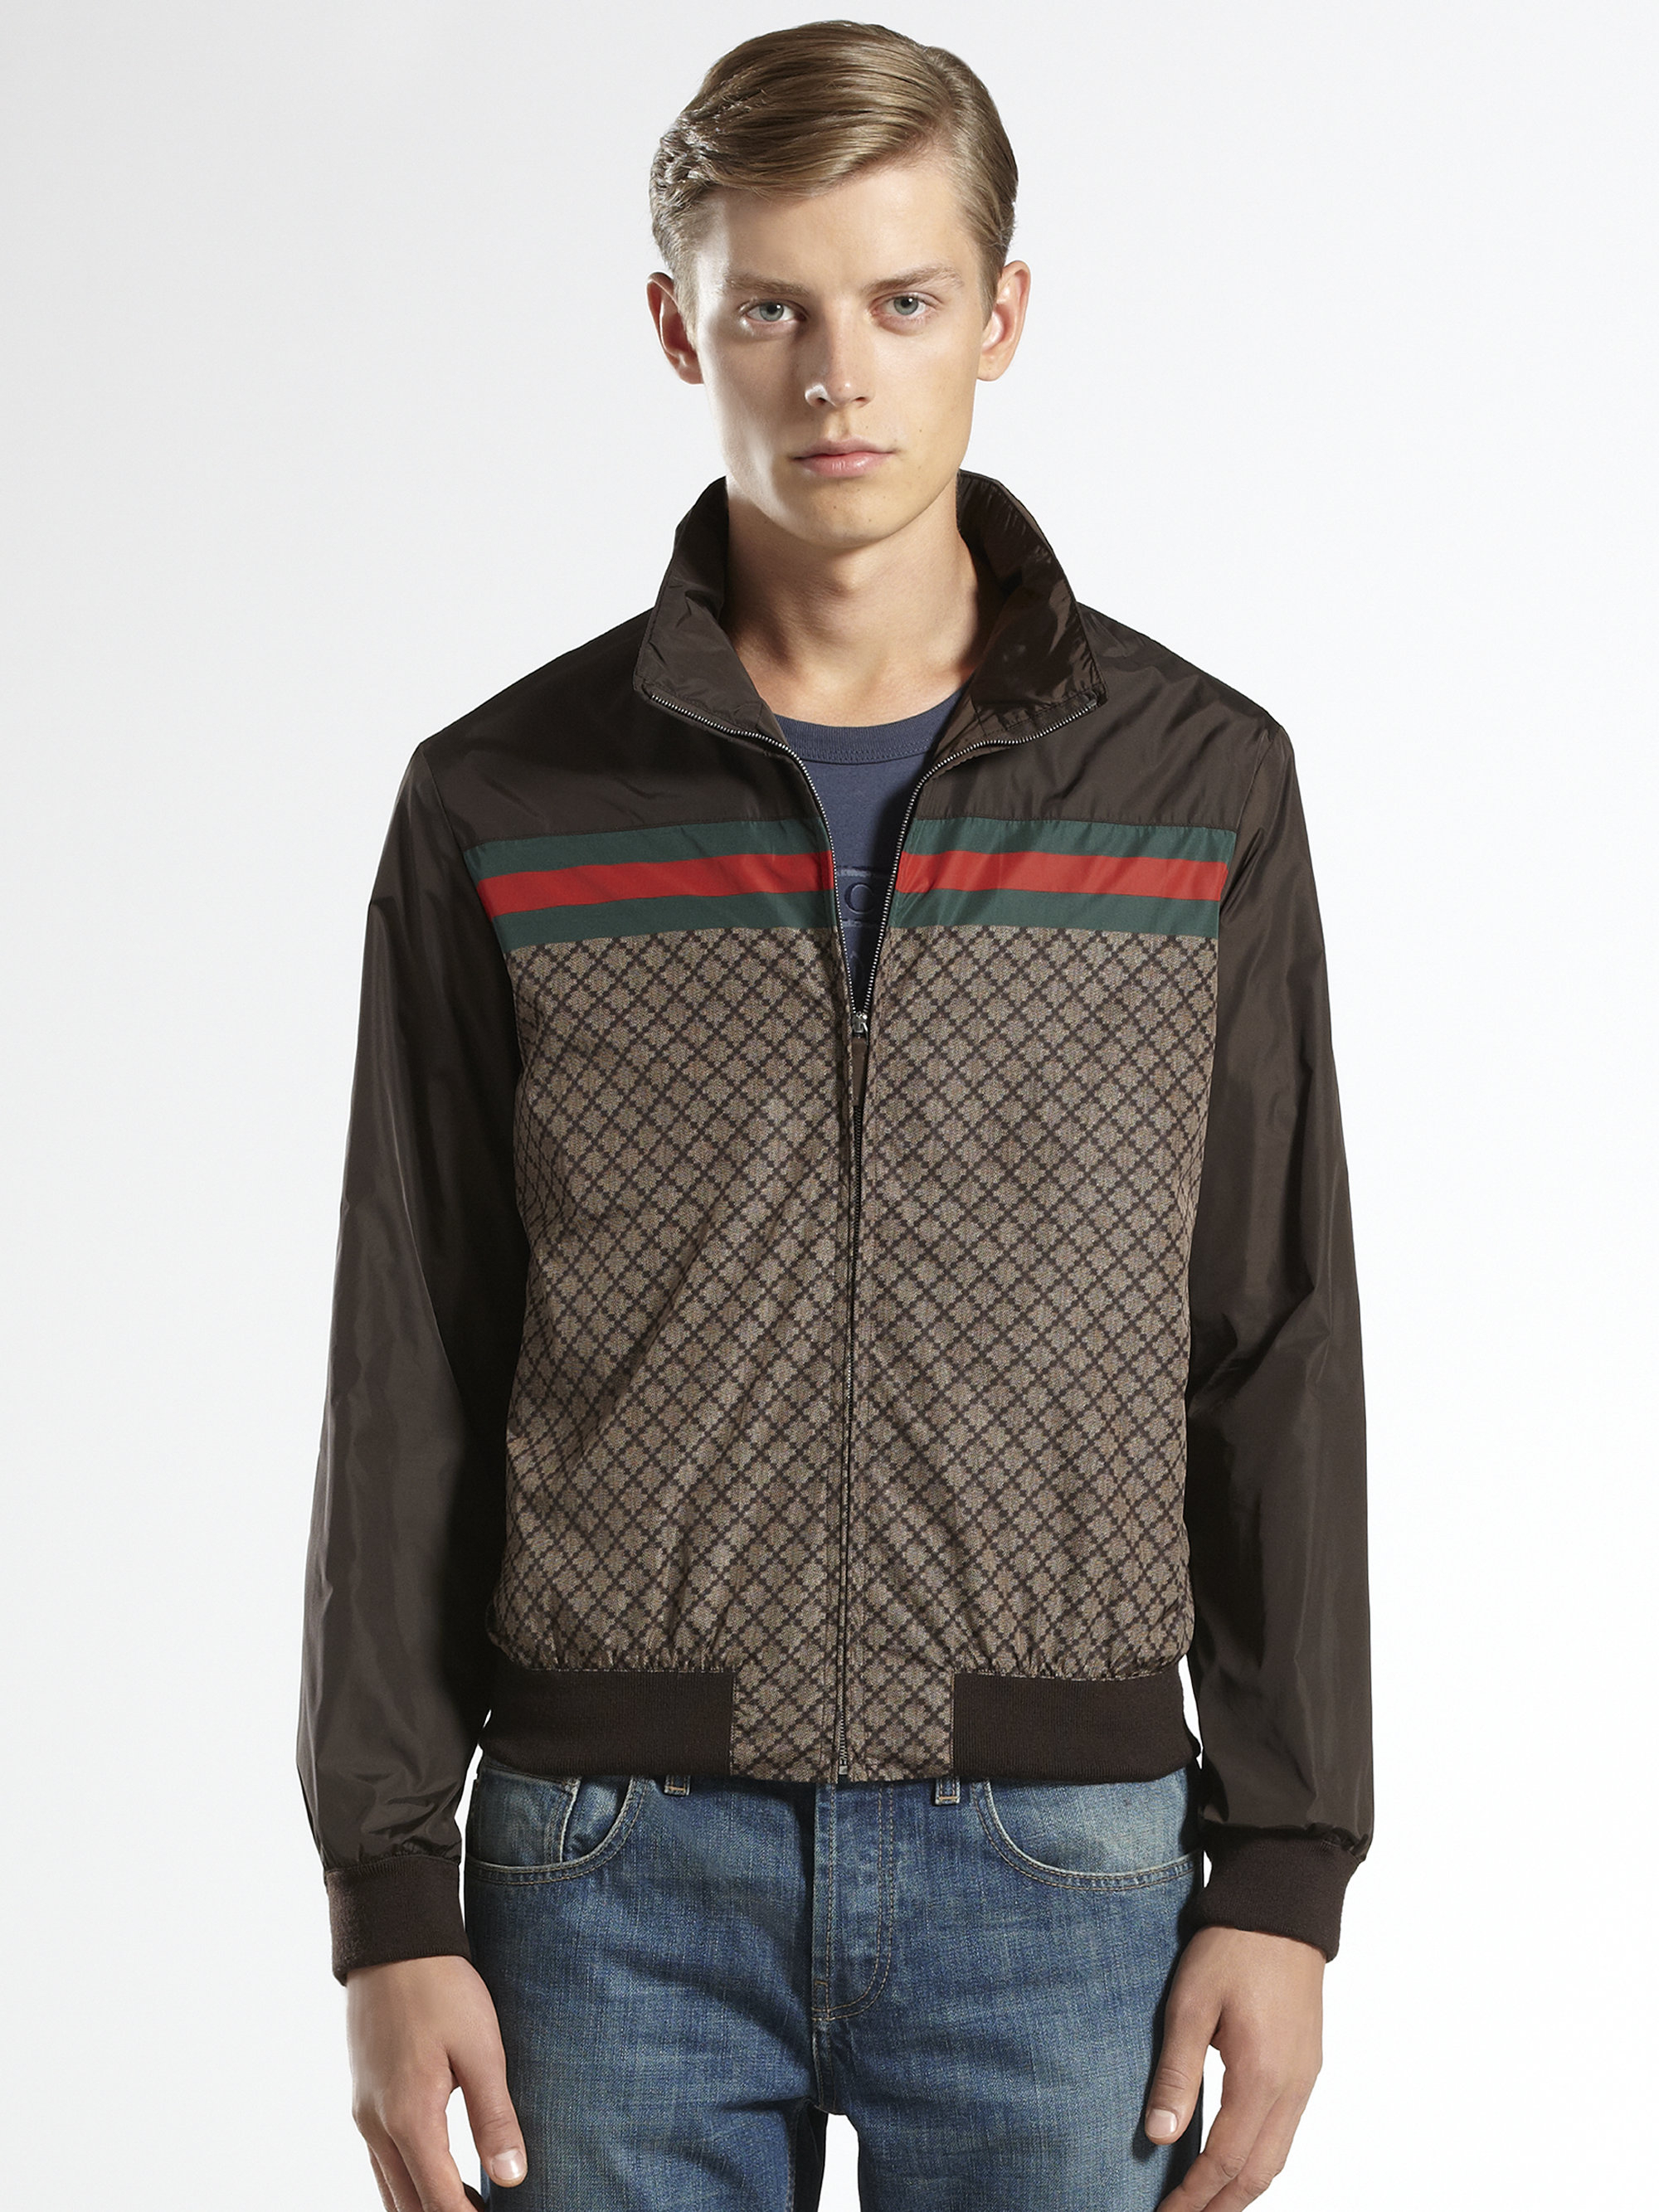 Lyst - Gucci Diamante Jacket in Brown for Men b88c0a40e505